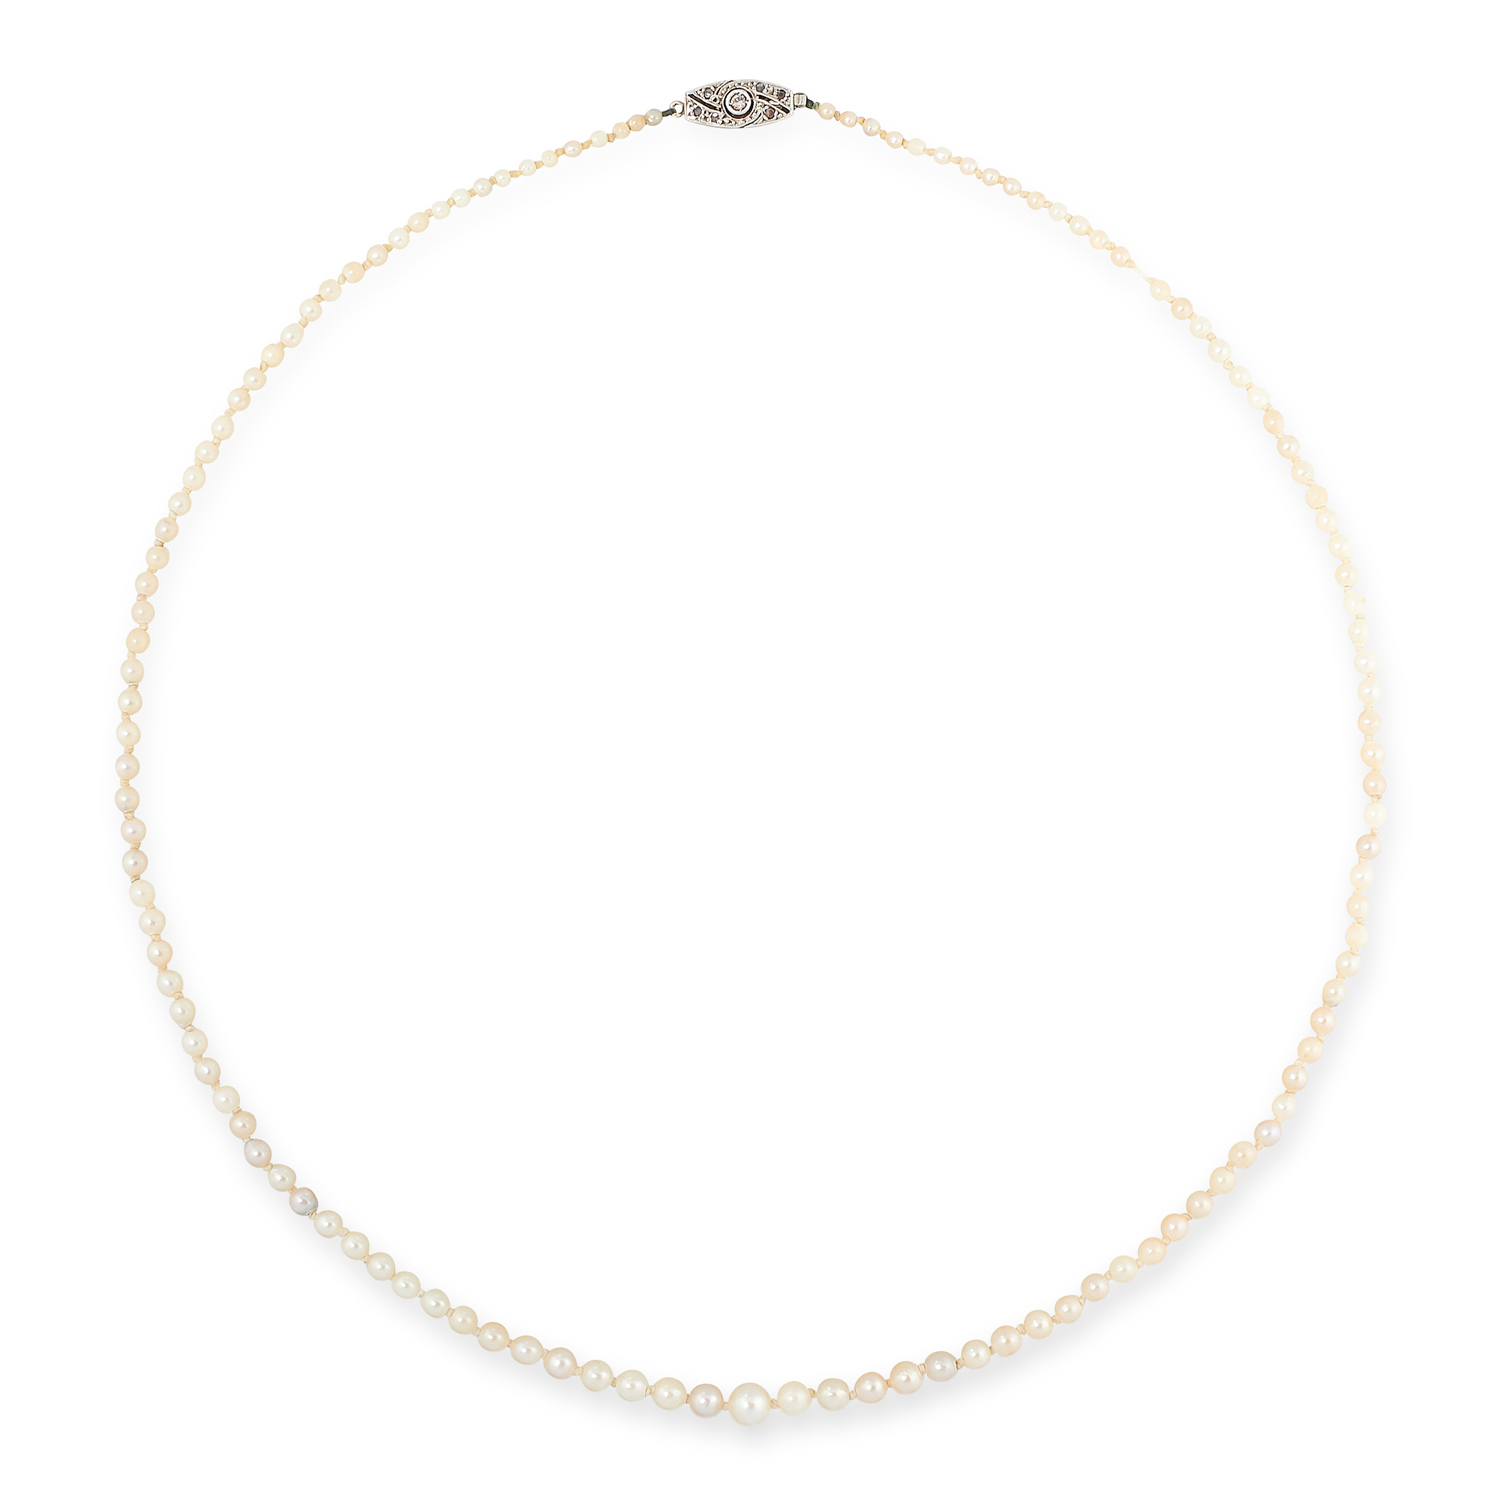 AN ANTIQUE PEARL AND DIAMOND NECKLACE in 18ct gold, comprising of a single row of pearls ranging 2.